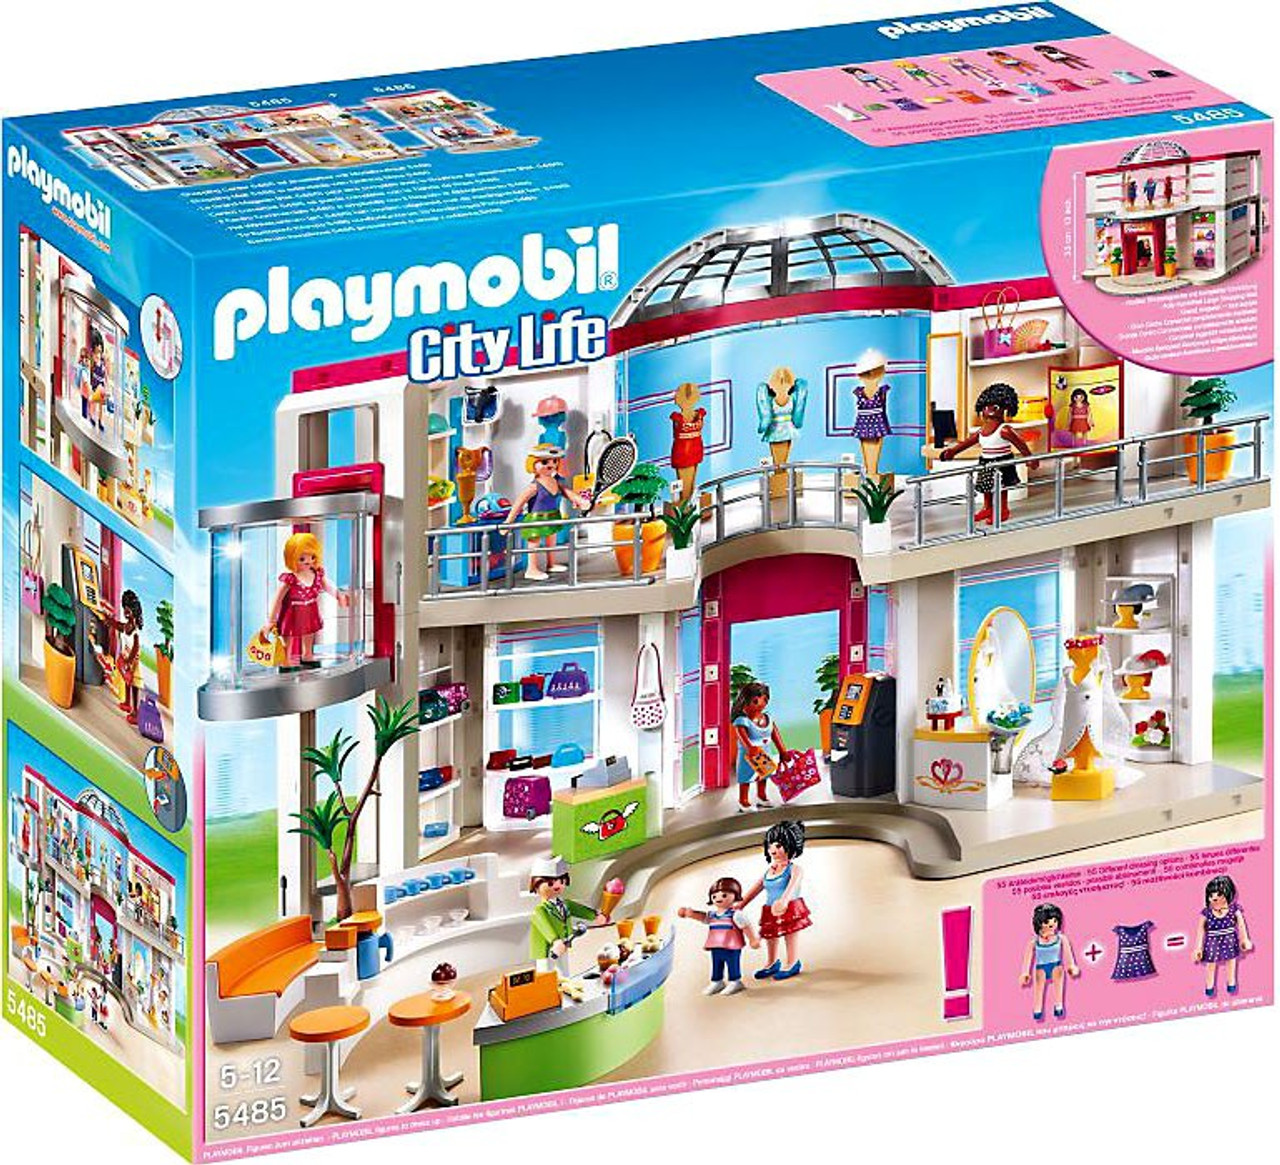 Playmobil City Life Küche Müller Playmobil City Life Furnished Shopping Mall Set 5485 - Toywiz